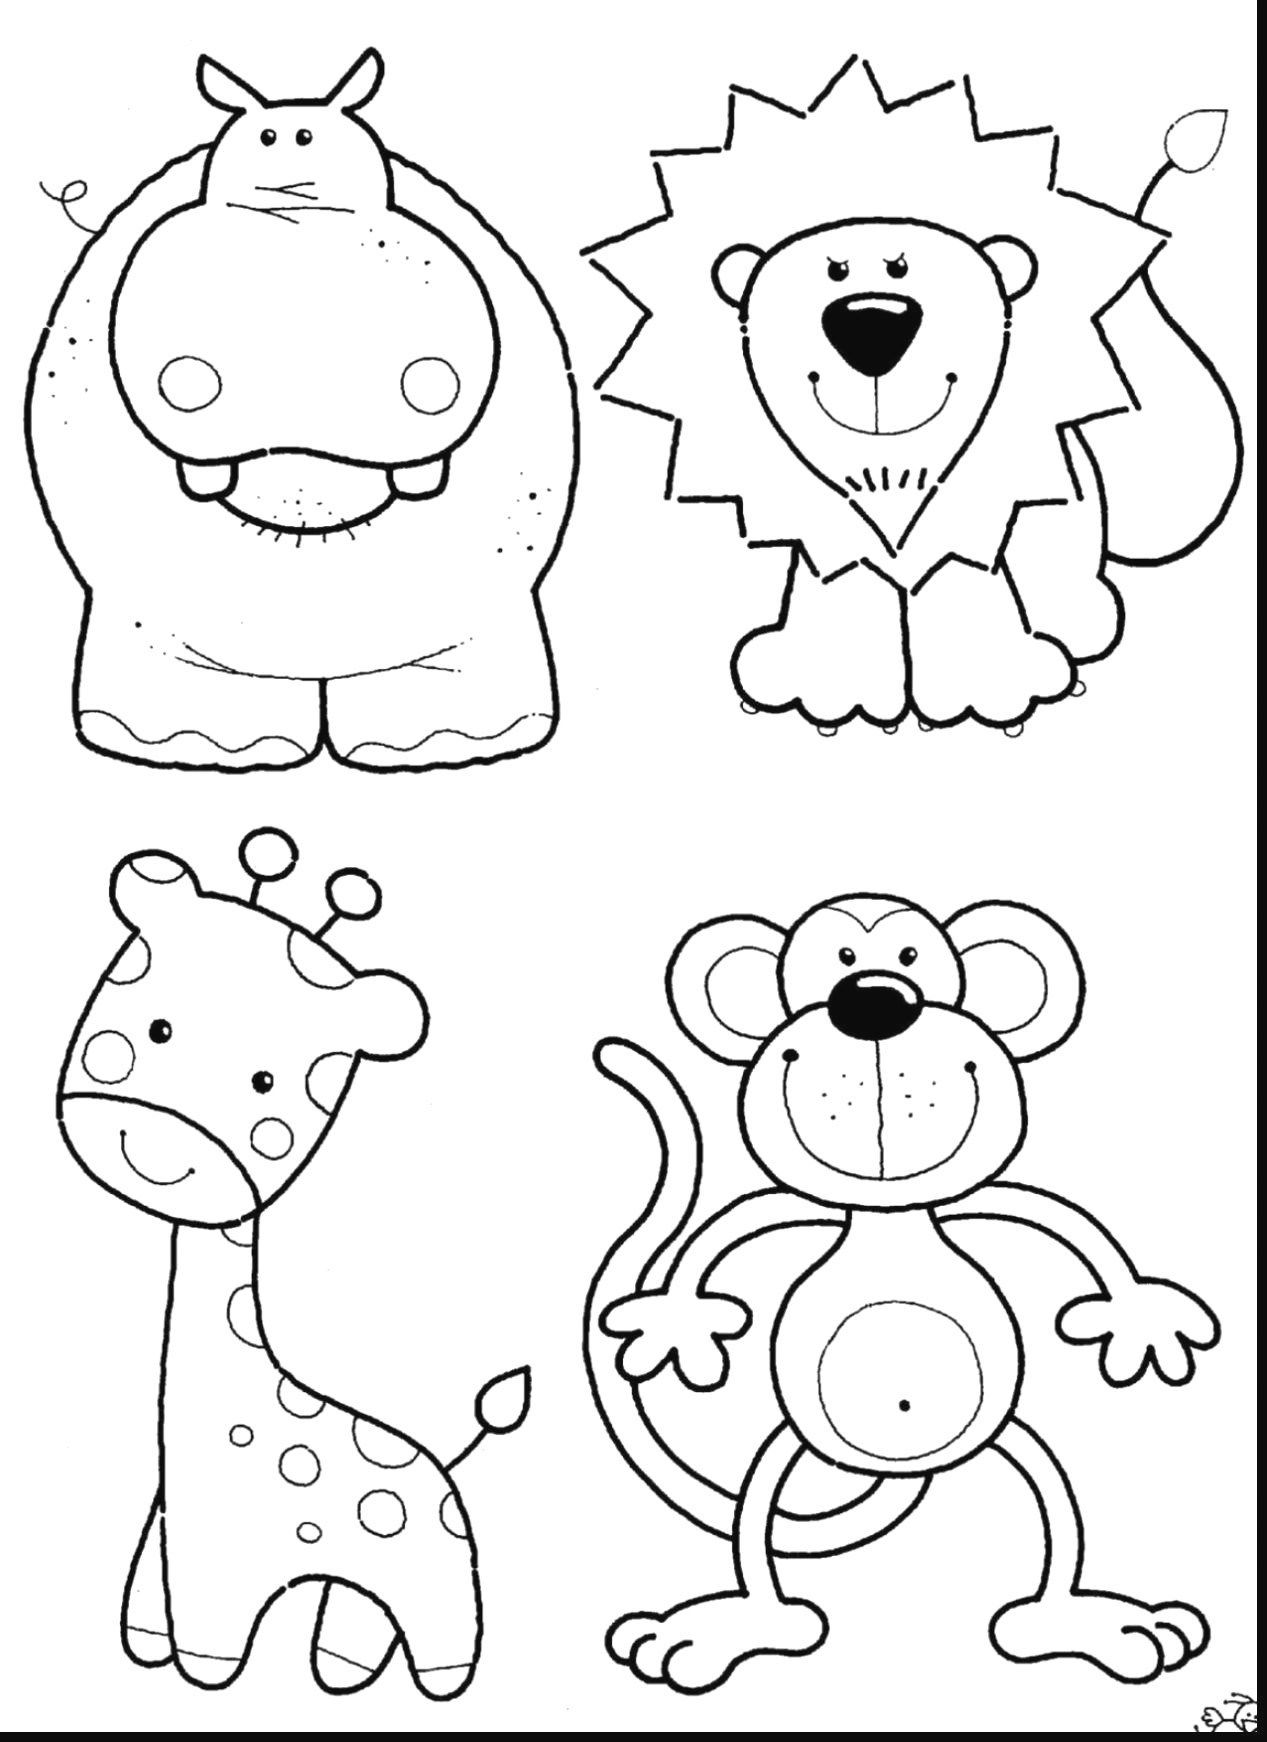 Zoo Animals Coloring Pages Zoo Animal Coloring Pages To Print Color Pages Animals Coloring Entitlementtrap Com Zoo Coloring Pages Animal Coloring Books Giraffe Coloring Pages